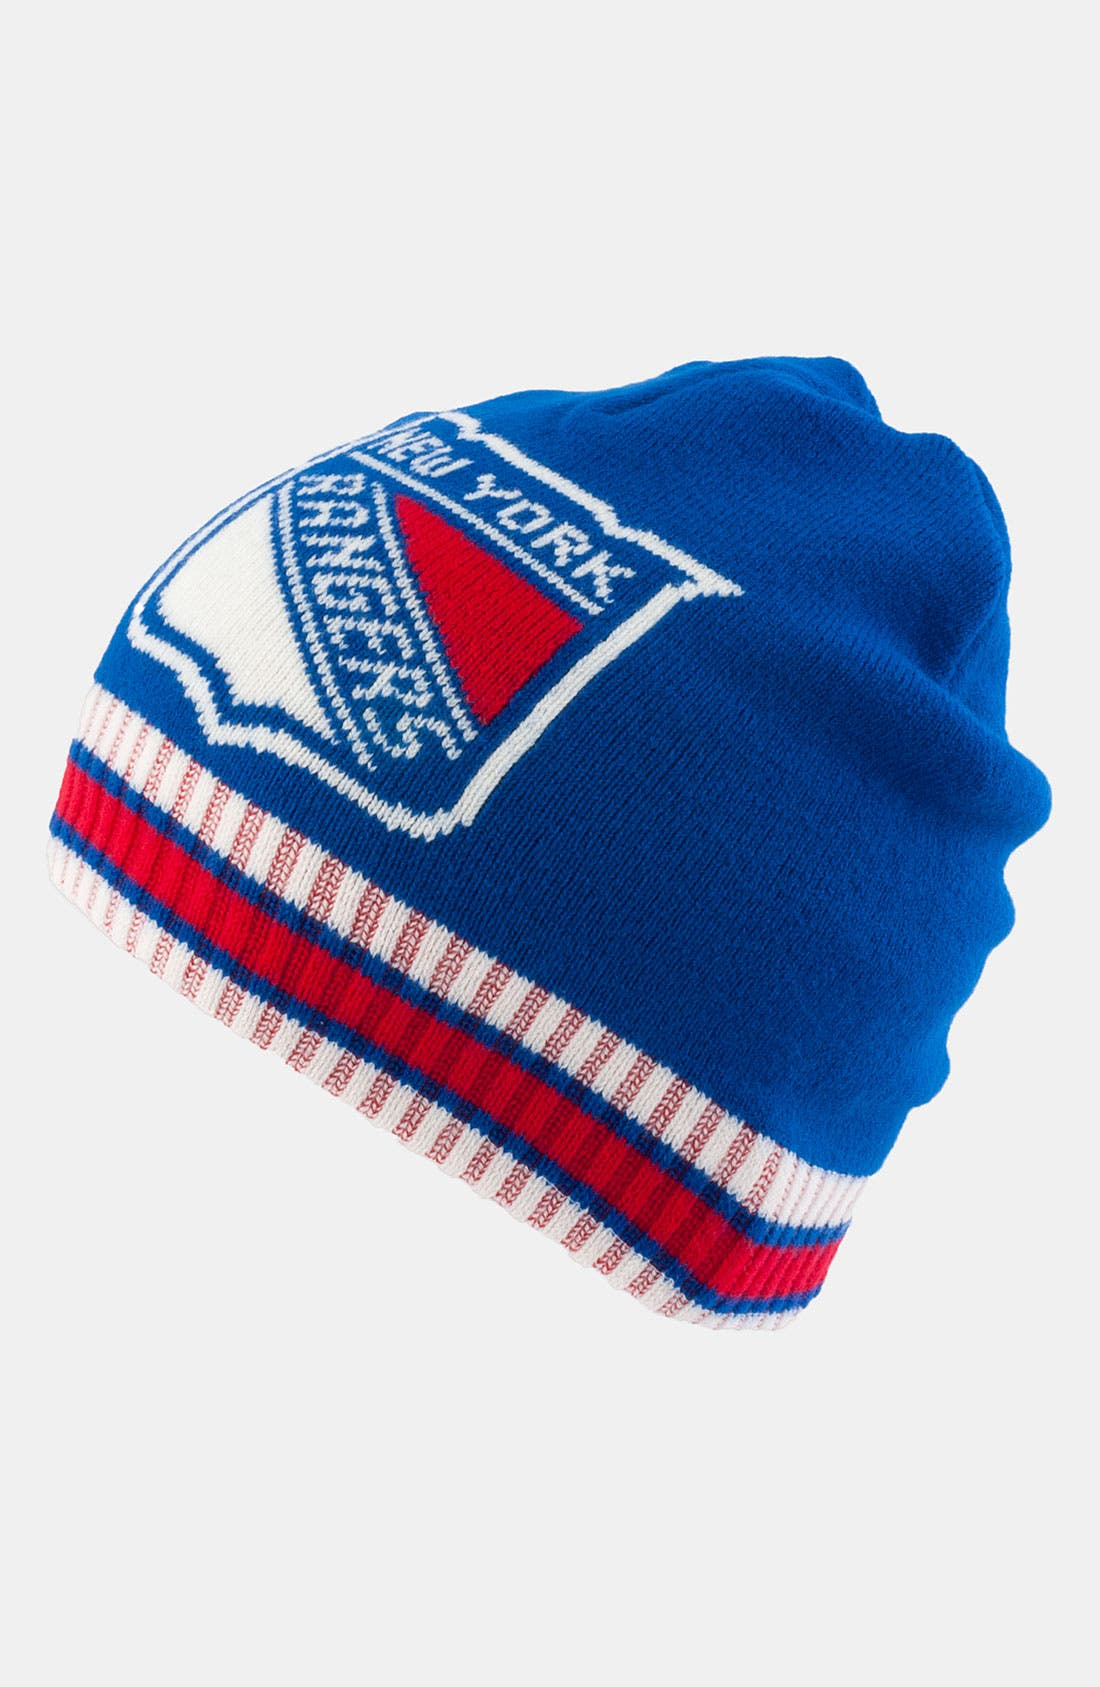 Alternate Image 1 Selected - American Needle 'New York Rangers - Right Wing' Knit Hat